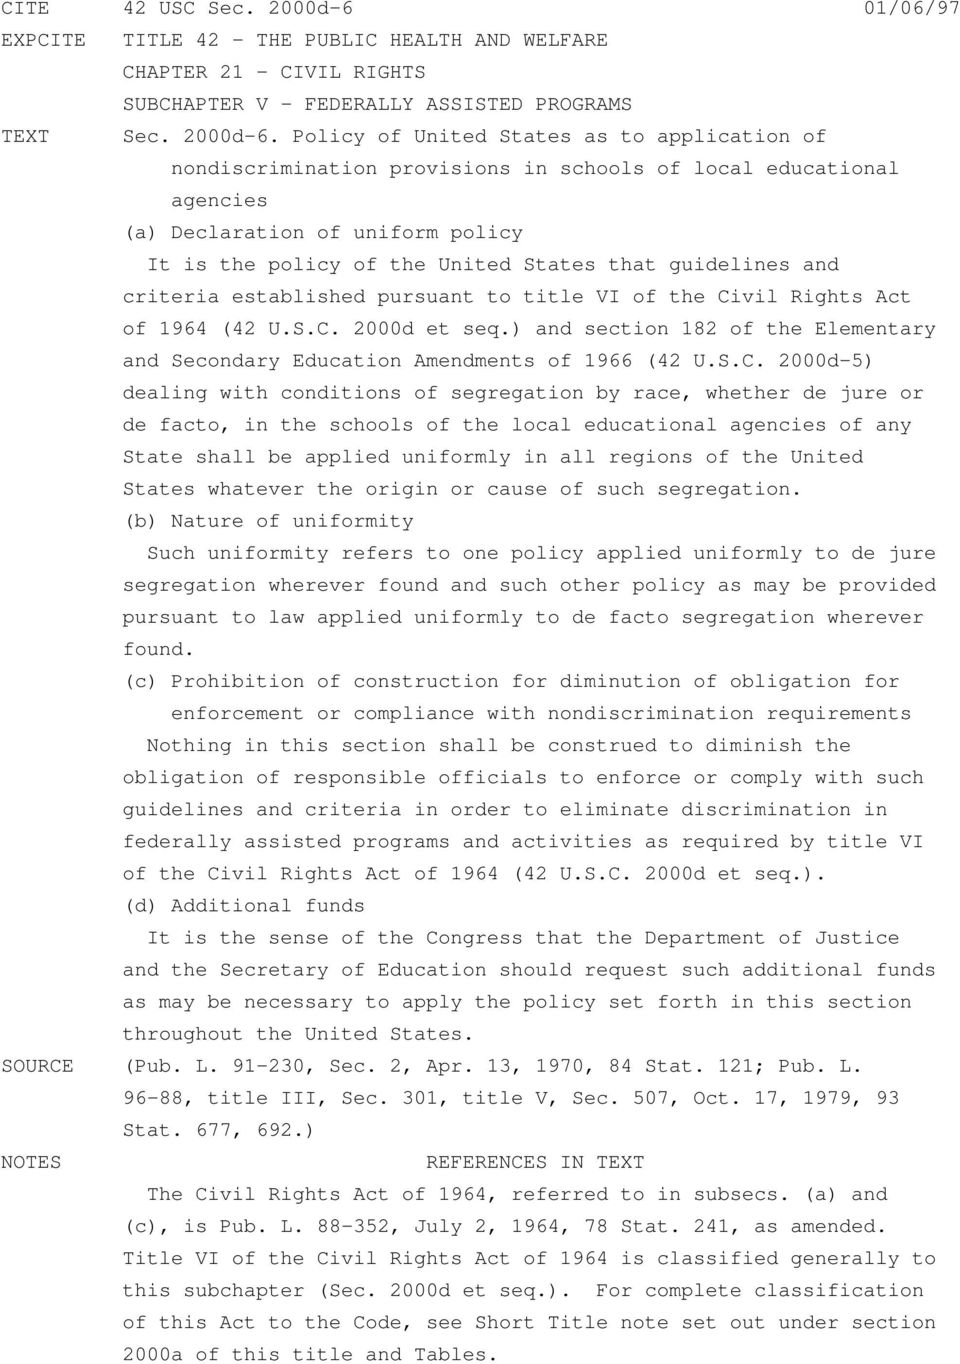 Policy of United States as to application of nondiscrimination provisions in schools of local educational agencies (a) Declaration of uniform policy It is the policy of the United States that